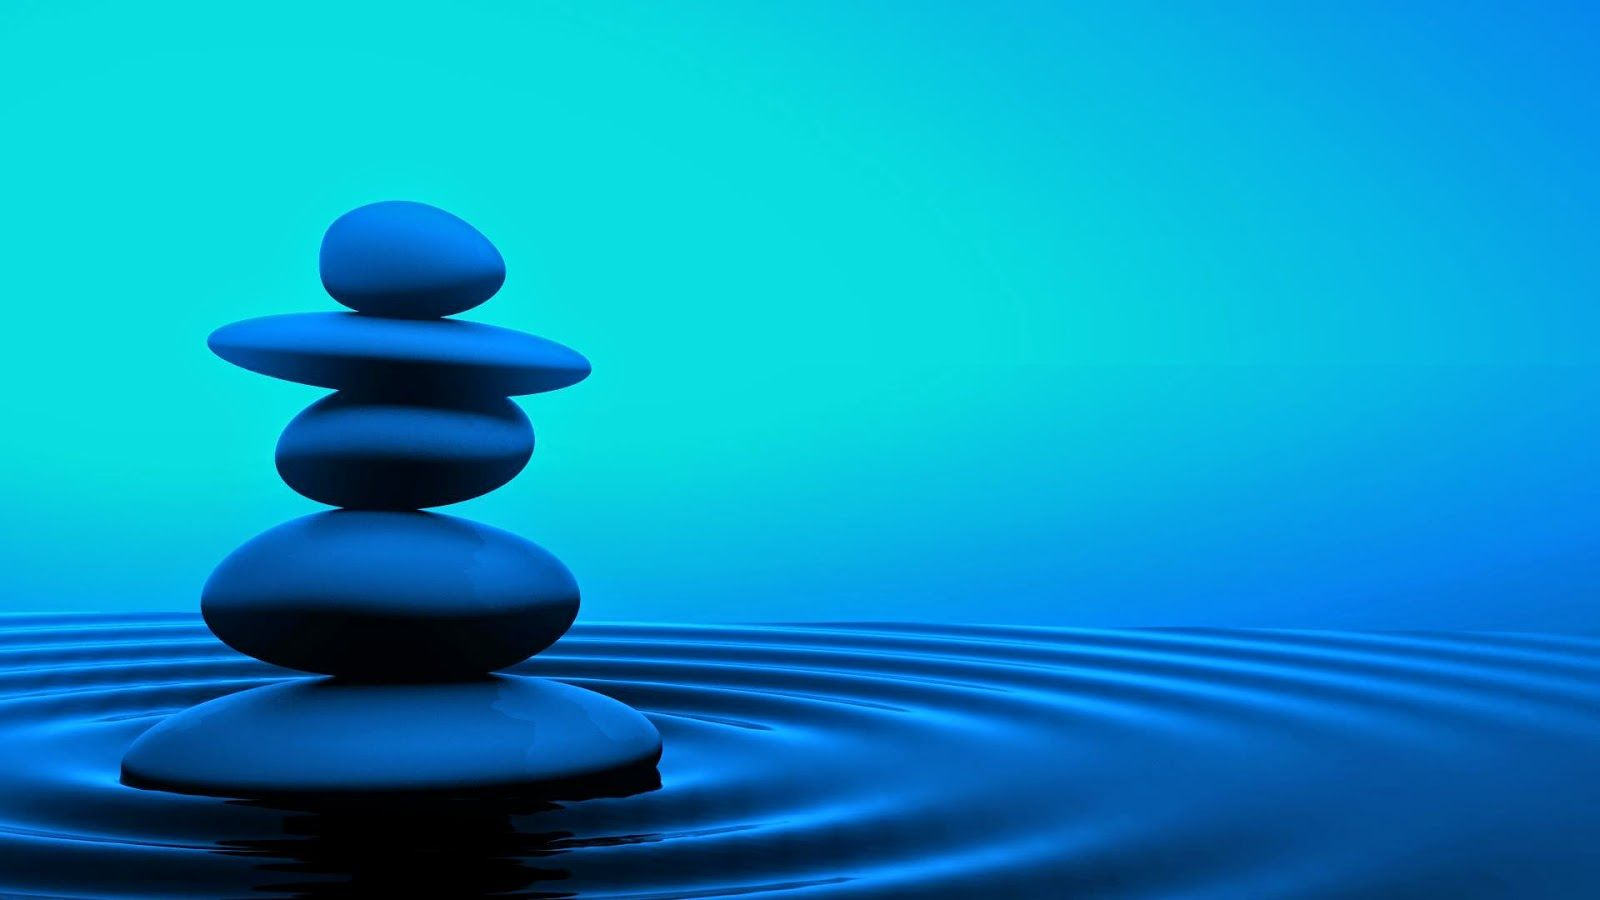 Chinese Zen Meditation Pictures 1080p Full Hd Widescreen